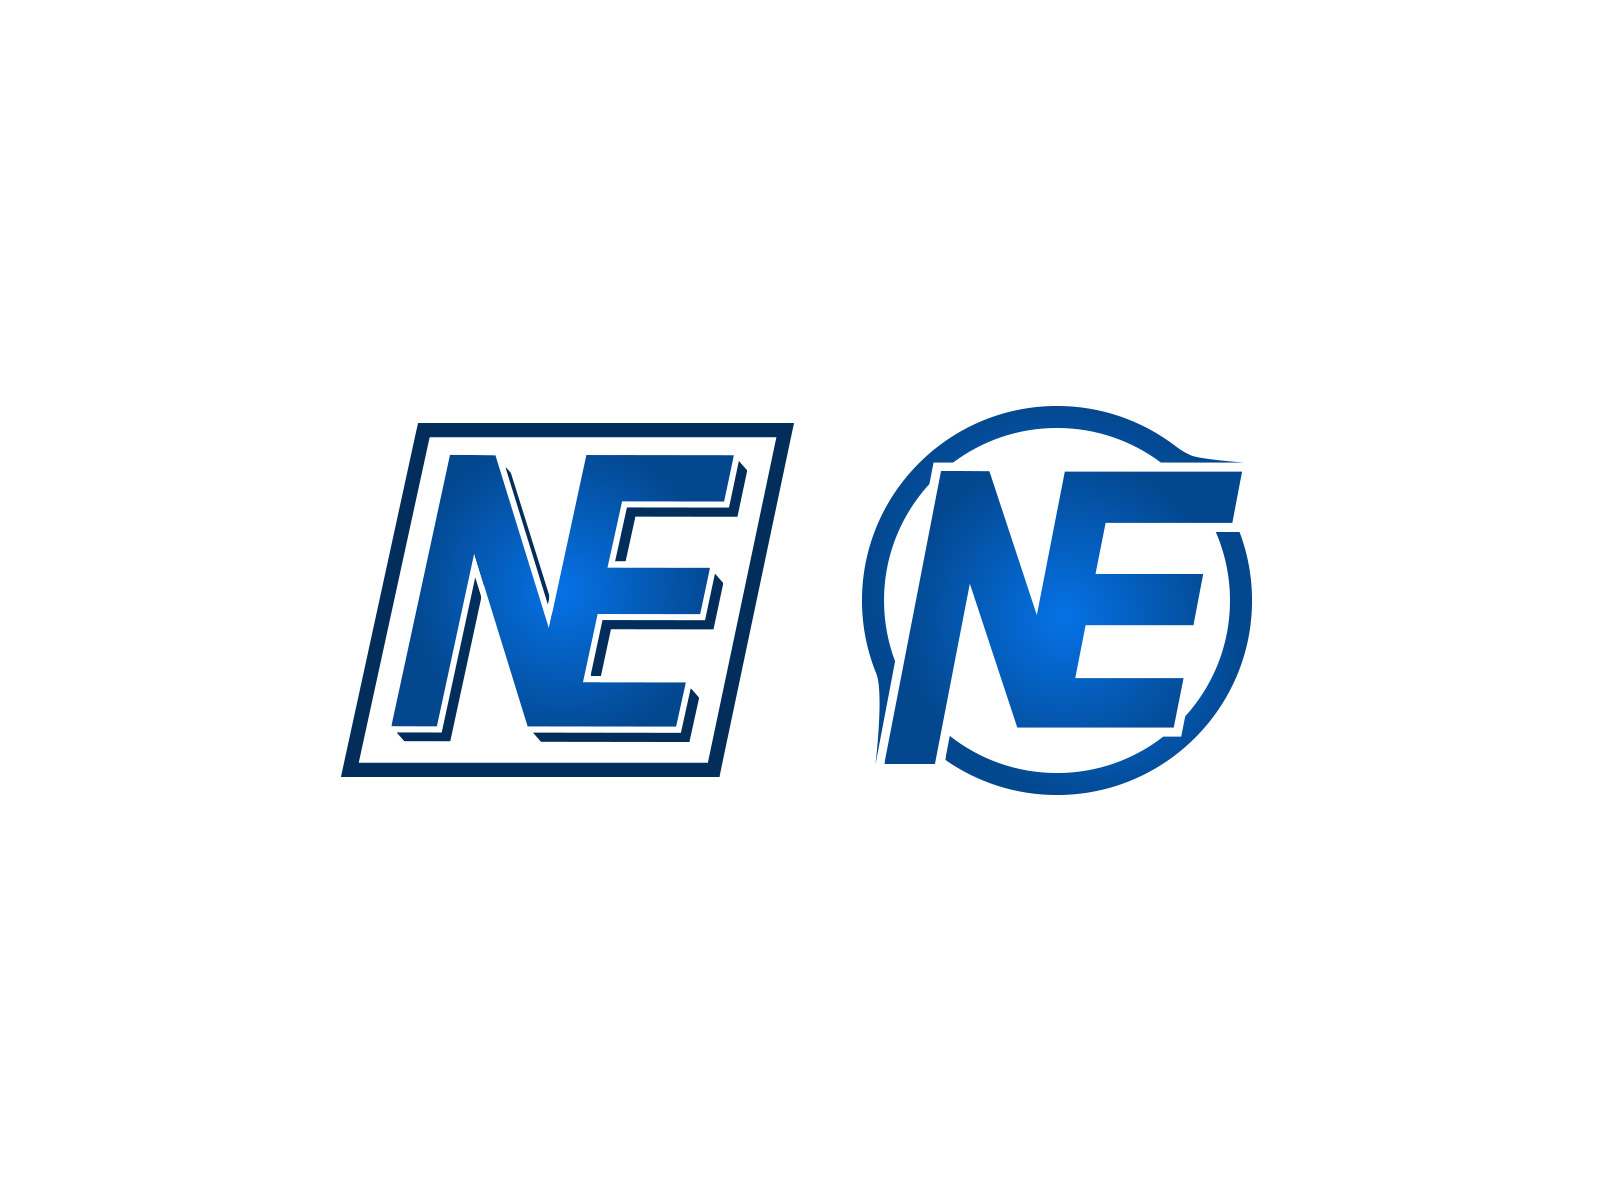 Logo Design by olii - Entry No. 173 in the Logo Design Contest Imaginative Logo Design for The Near East Equipment Co..